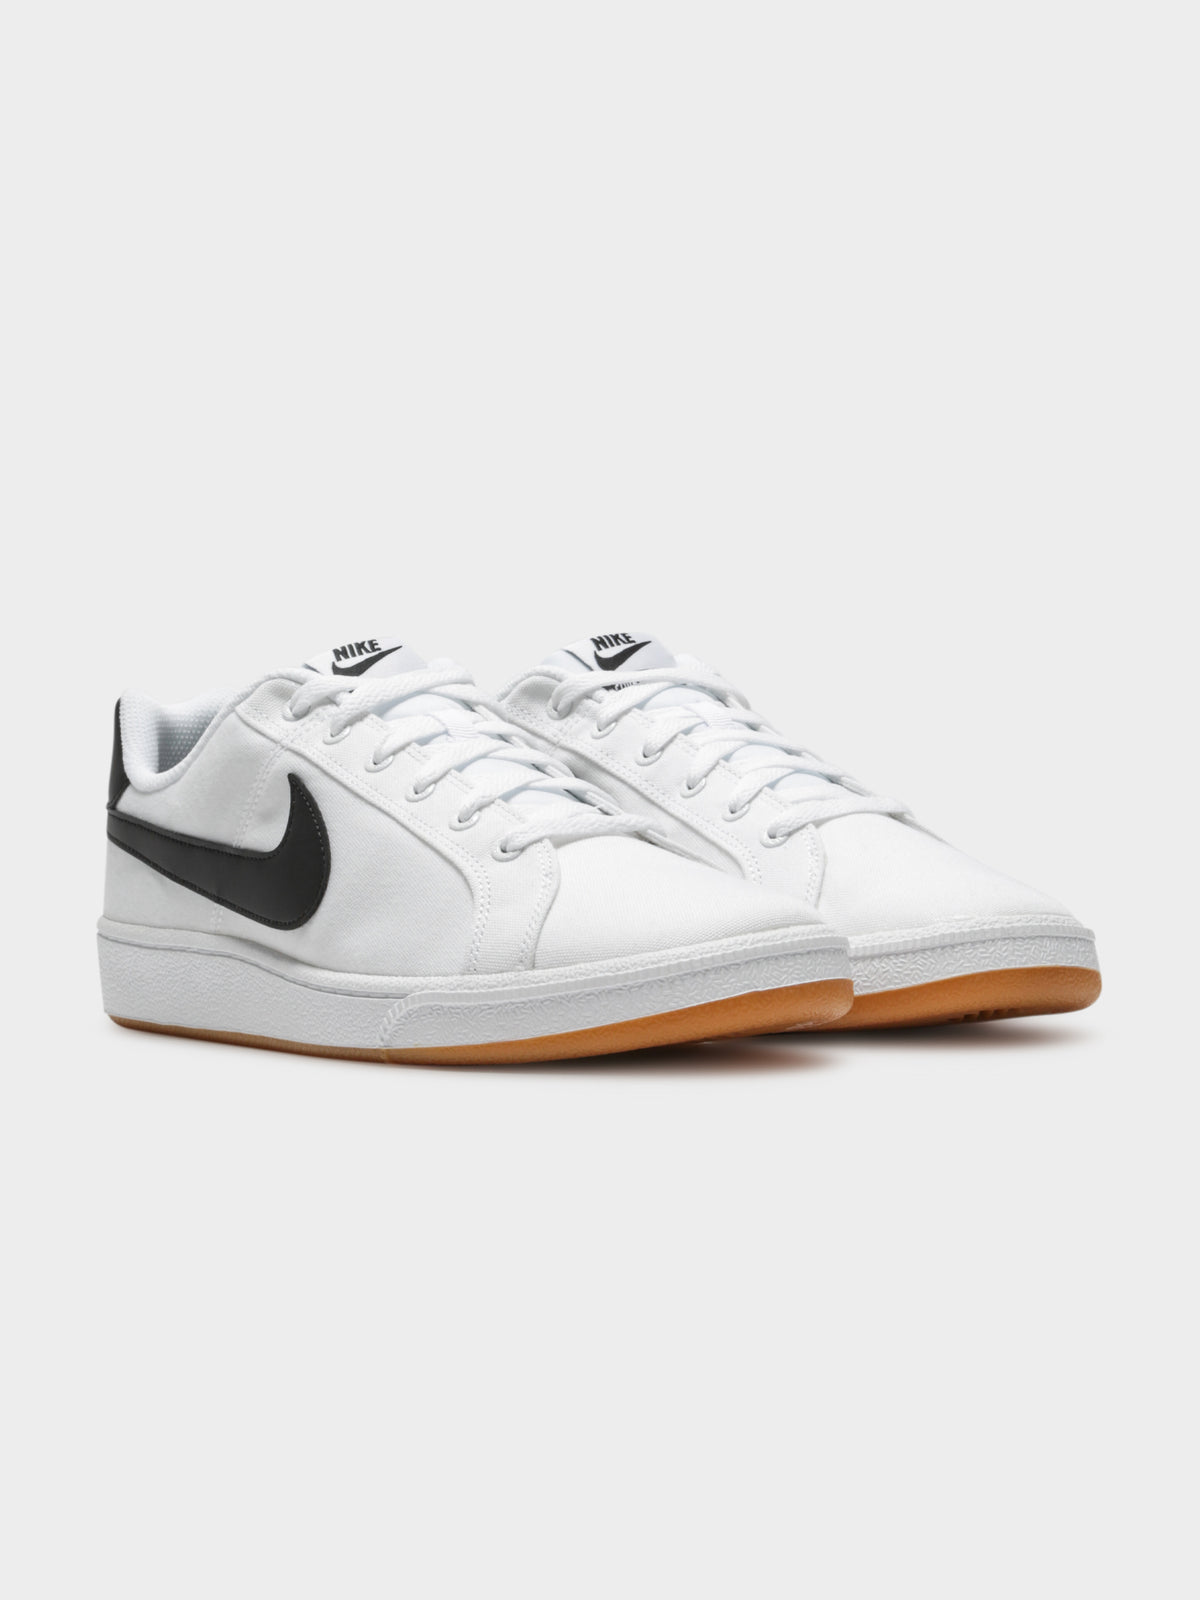 Mens Court Royale Canvas Sneakers in White & Black